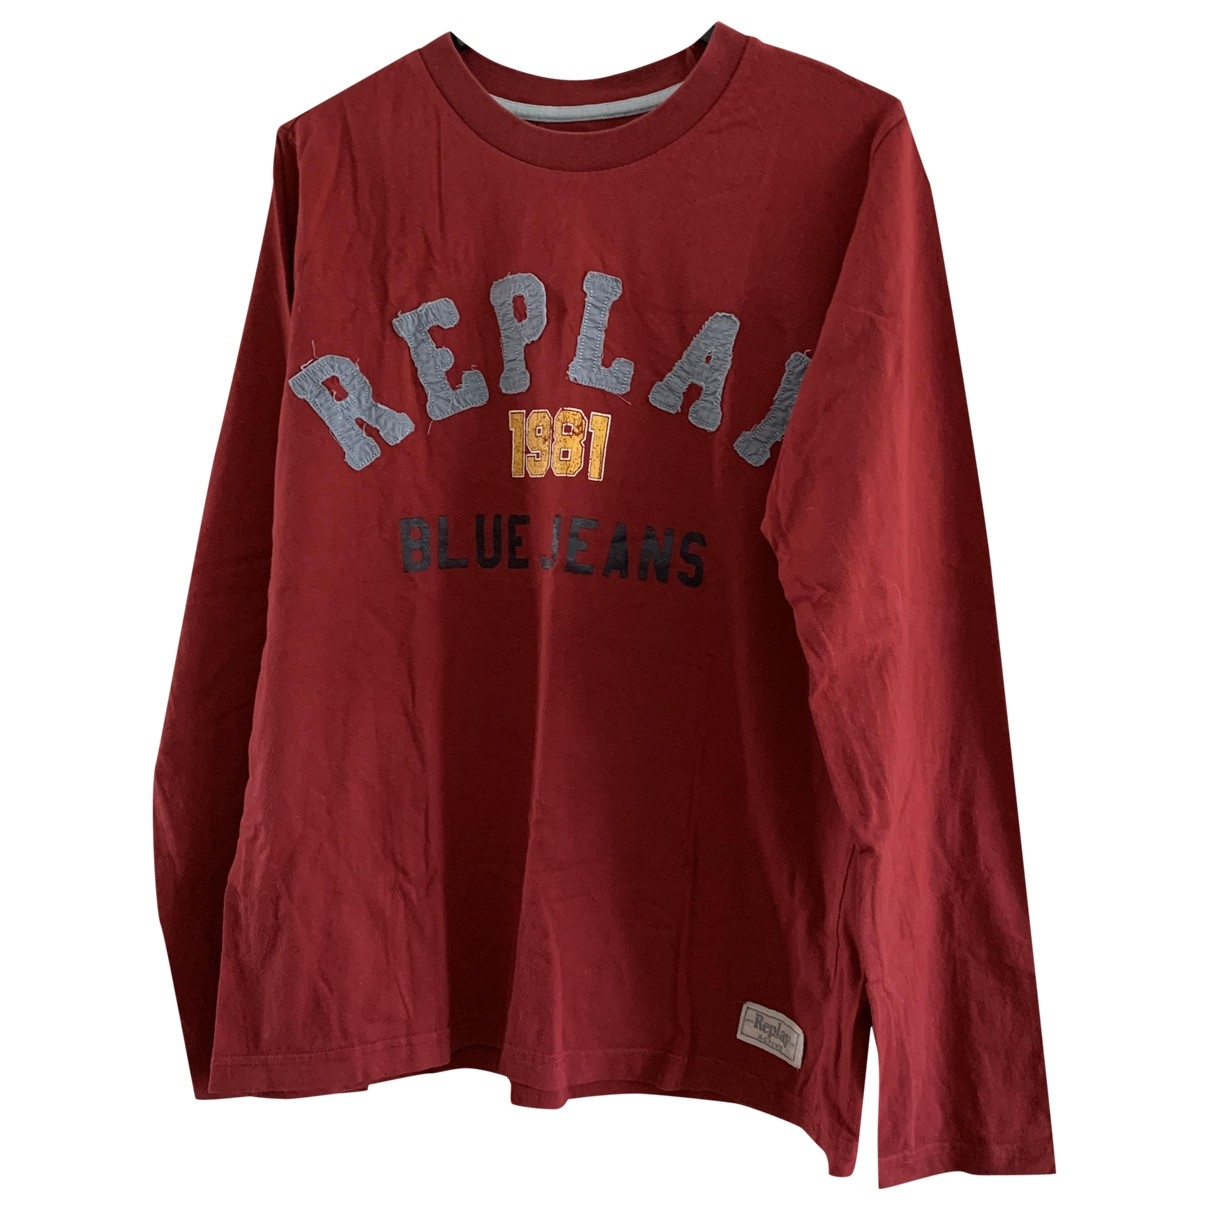 Replay - Tee shirts   pour homme en coton - rouge